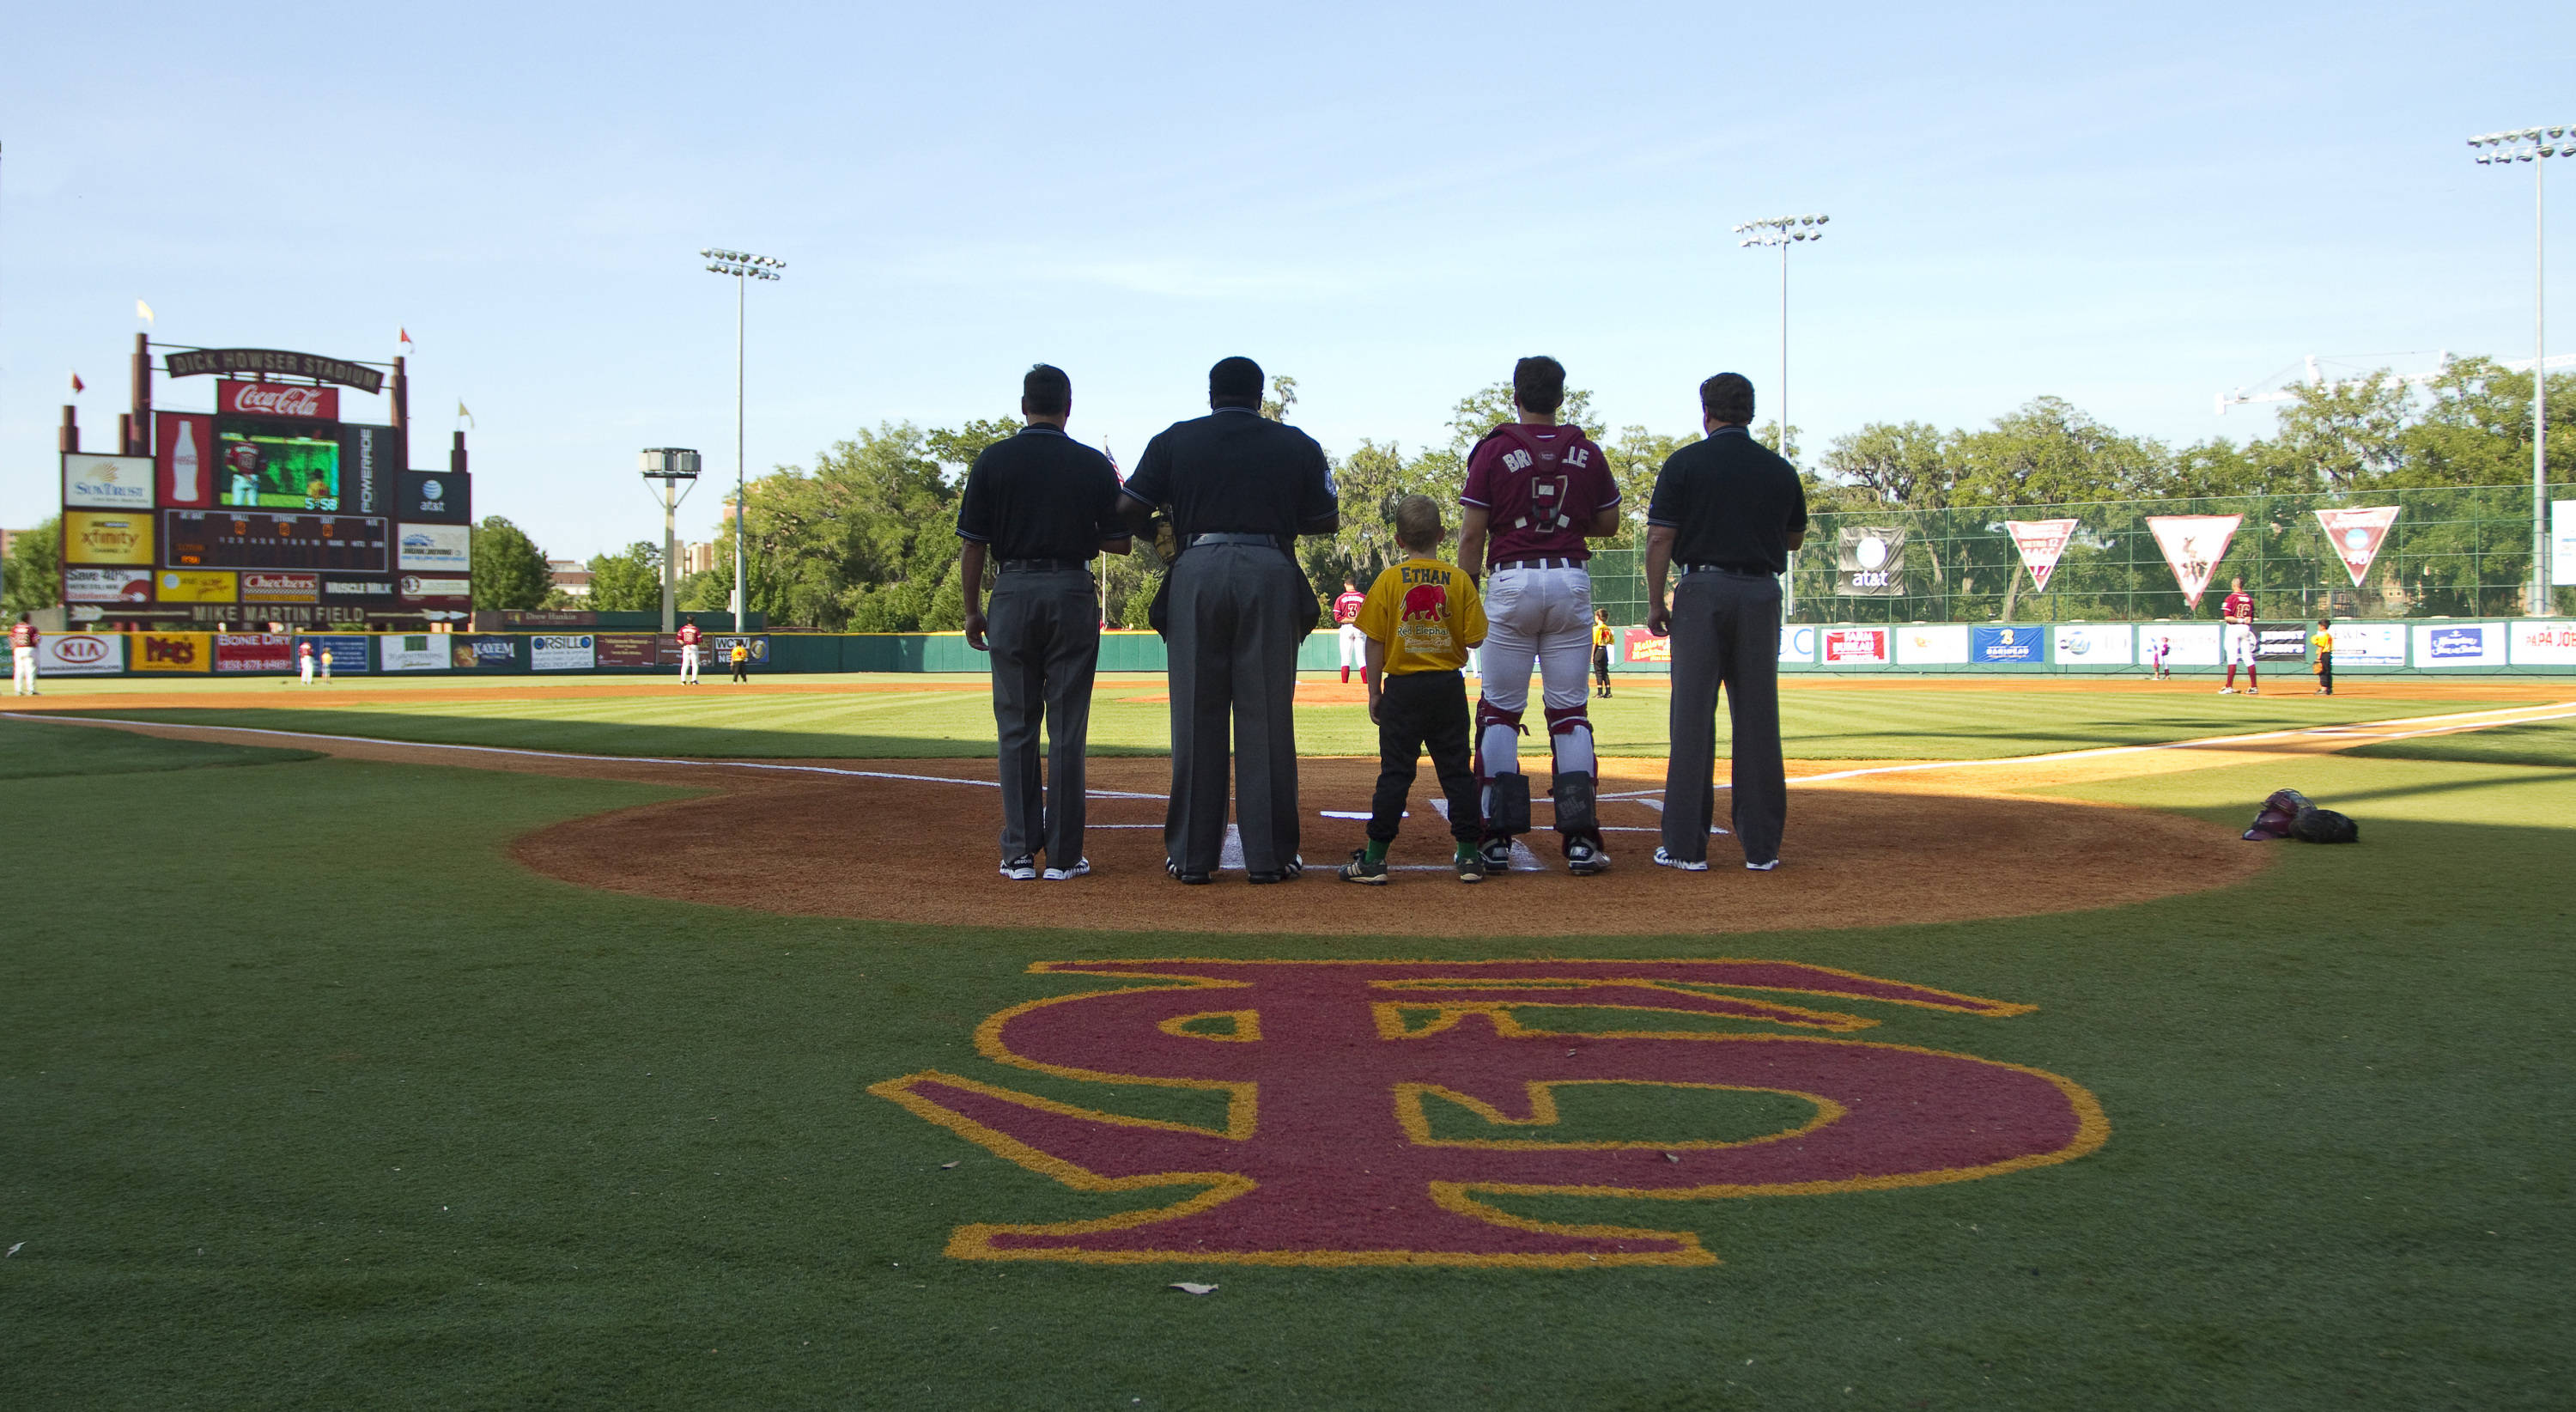 'Noles honor the flag during the playing of the national anthem.